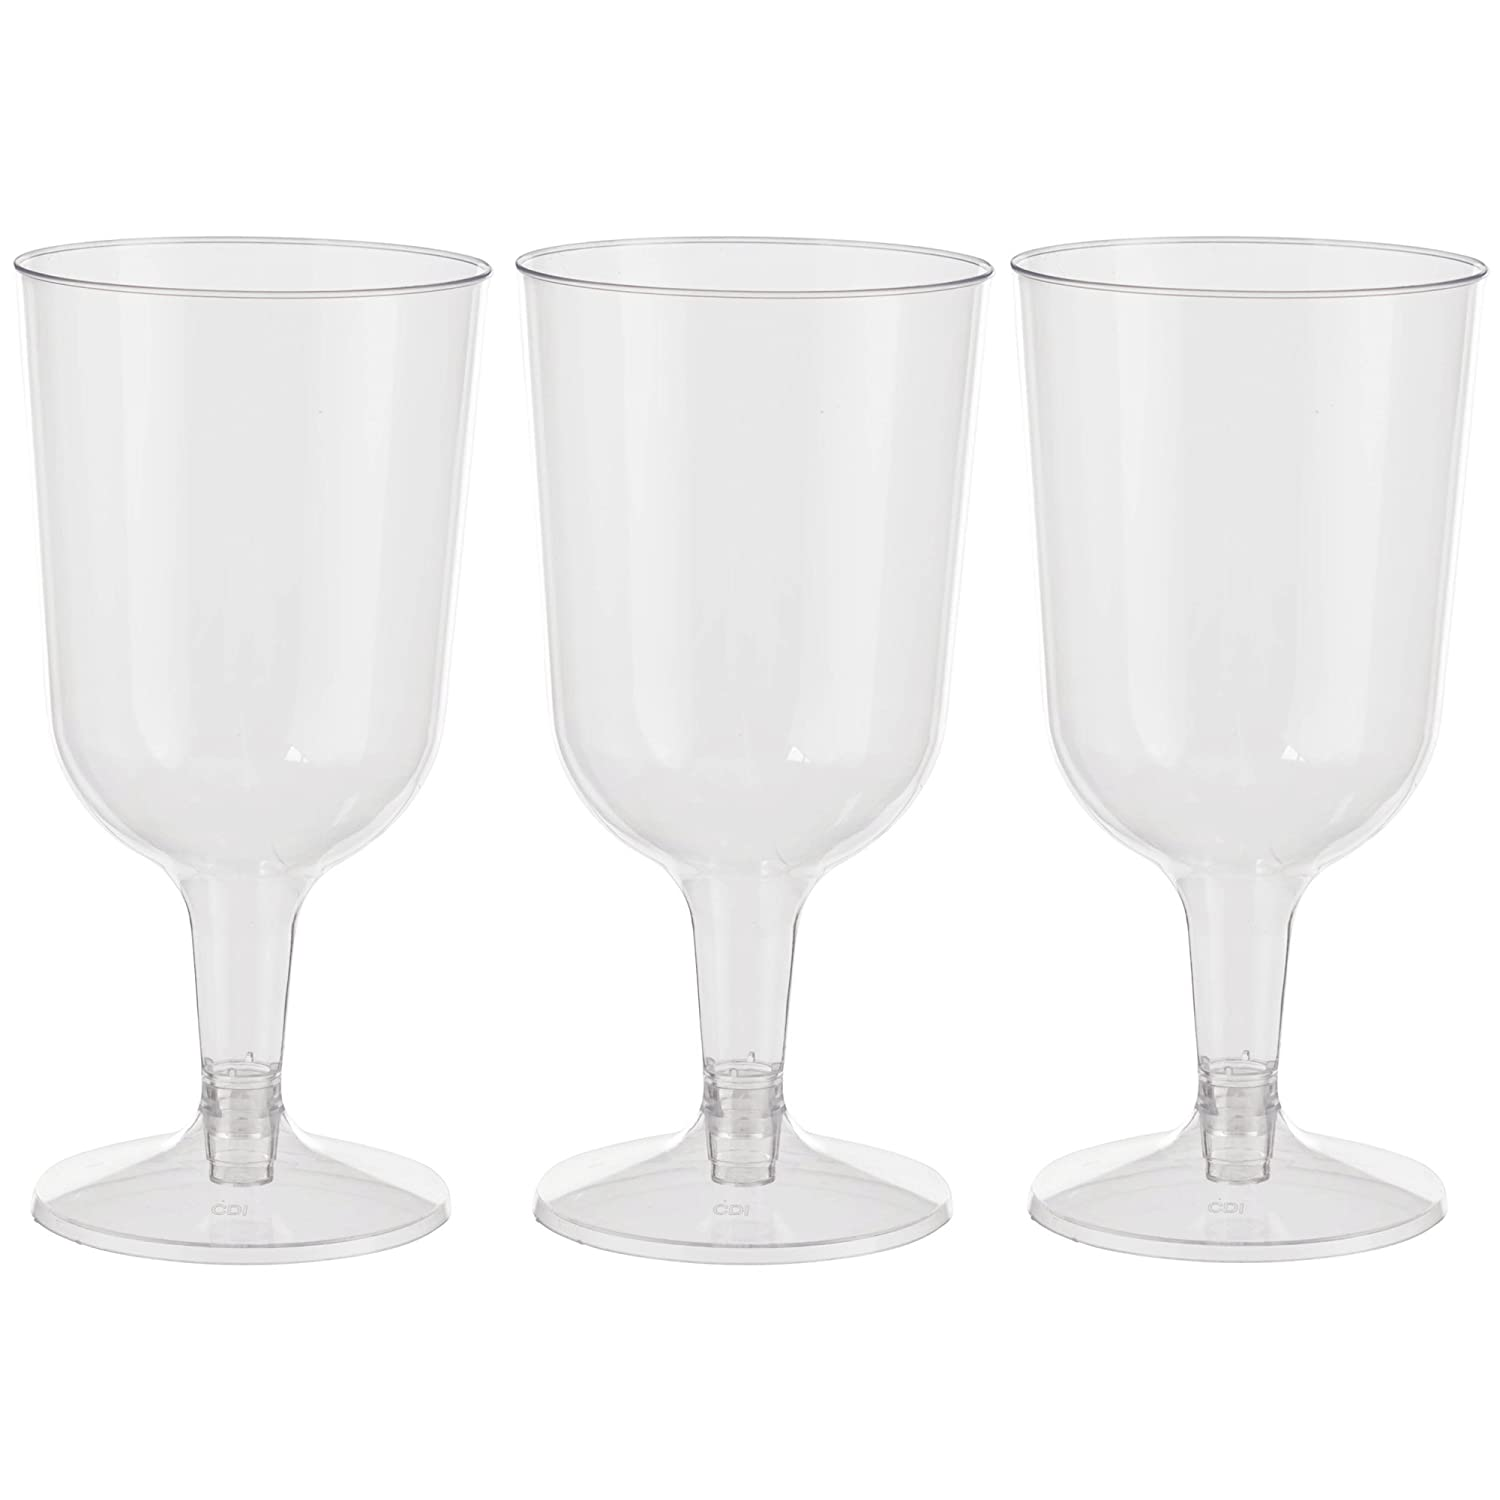 Crown Display COMINHKPR145911 2 Piece Stemmed Plastic Wine Cups Exquisite 6 oz Clear Plastic Wine Glasses 40